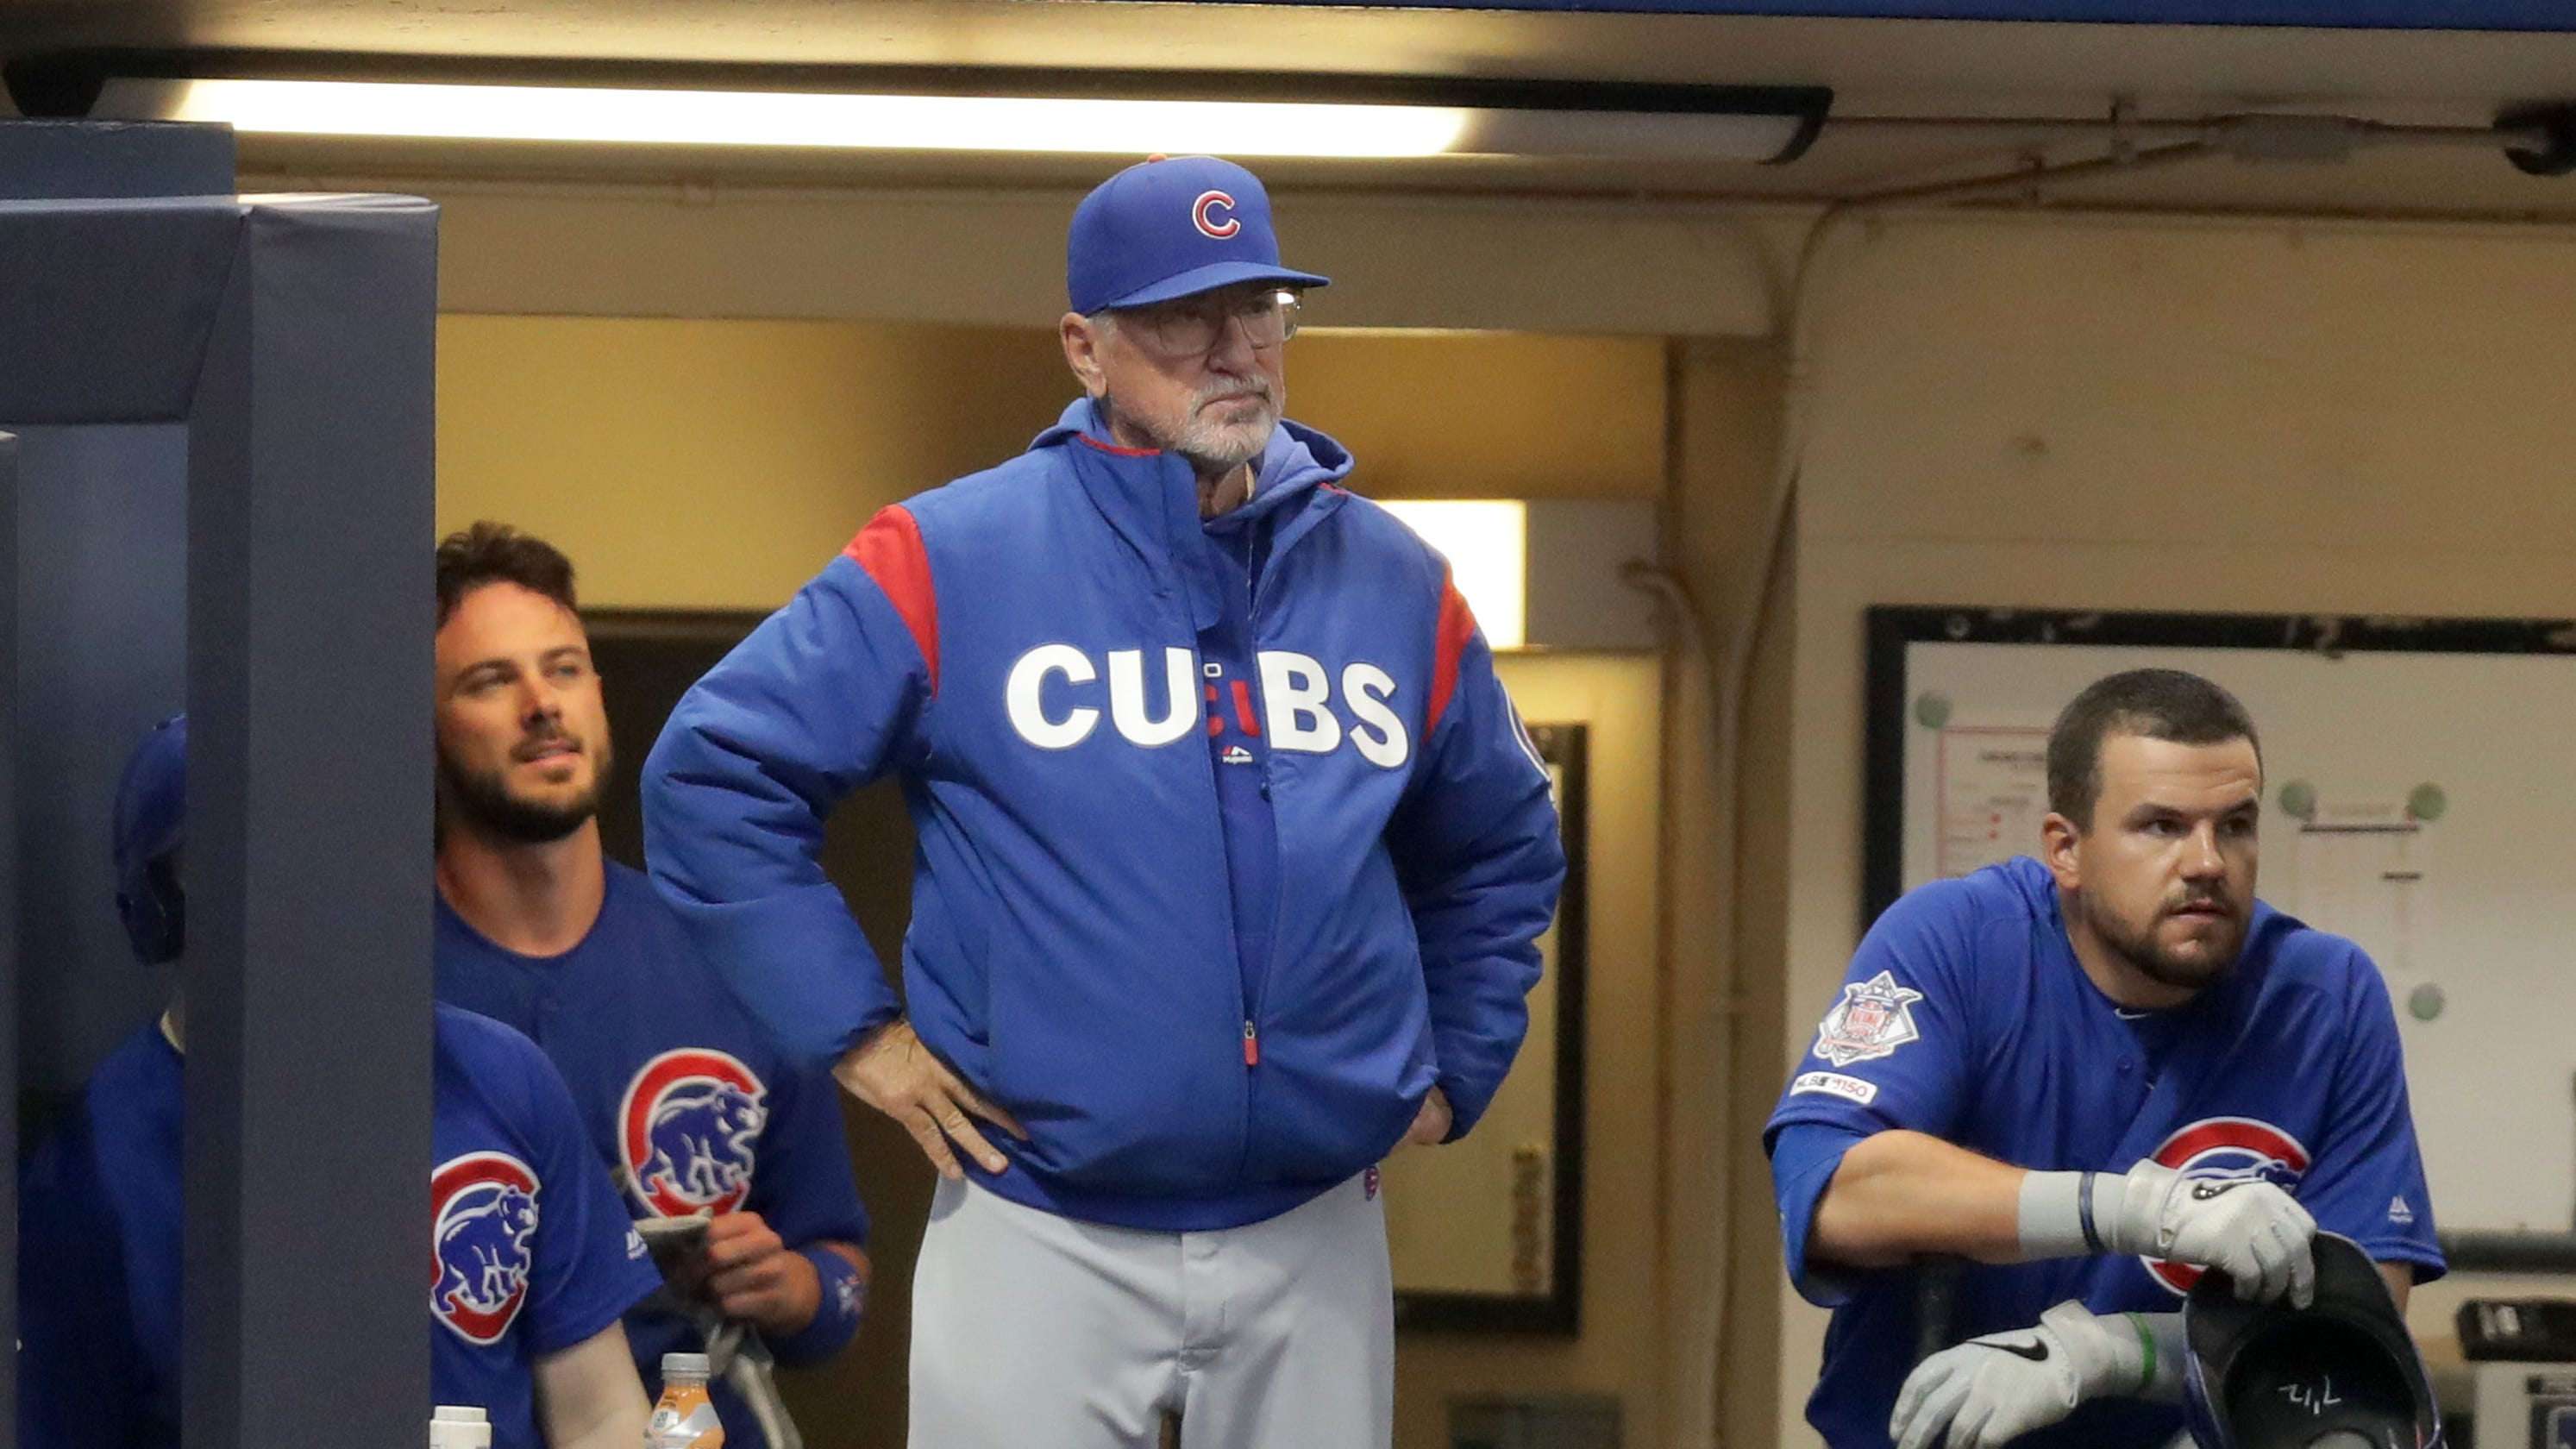 8b30ed278b4 Cameras catch a humorous exchange between Joe Maddon and Craig Counsell